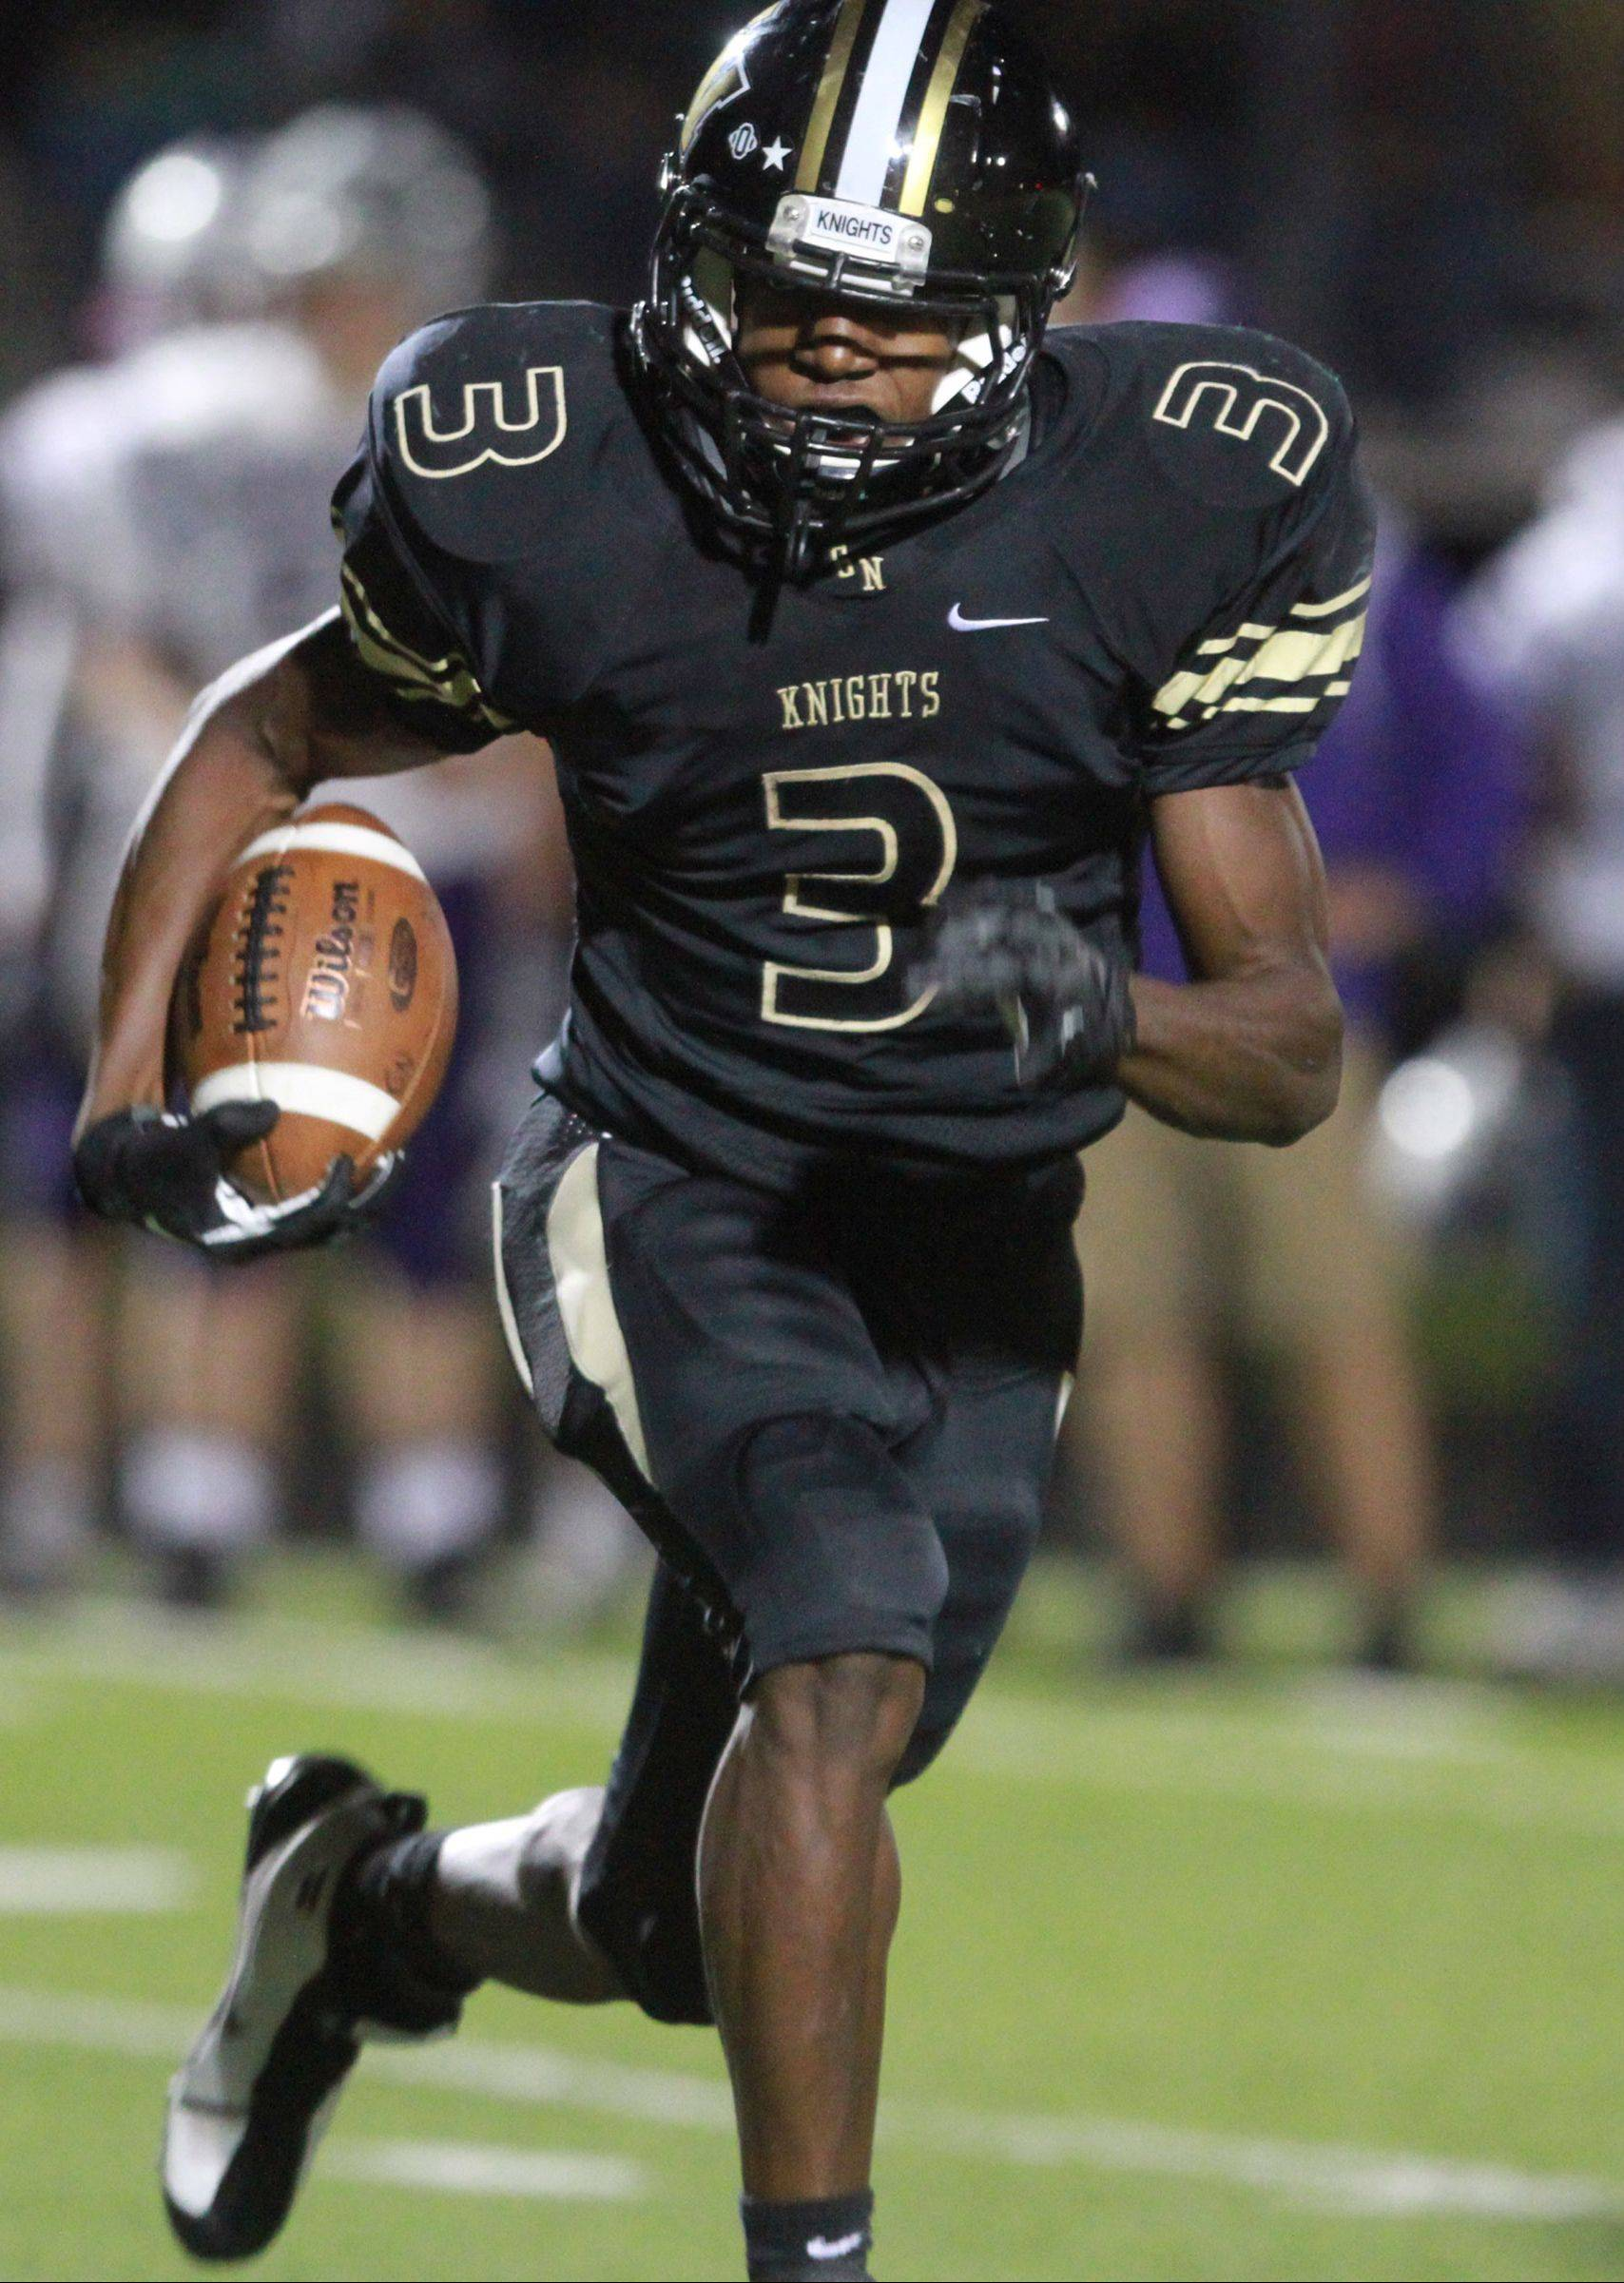 Grayslake North running back Titus Booker has room to roam Friday against visiting Hampshire.